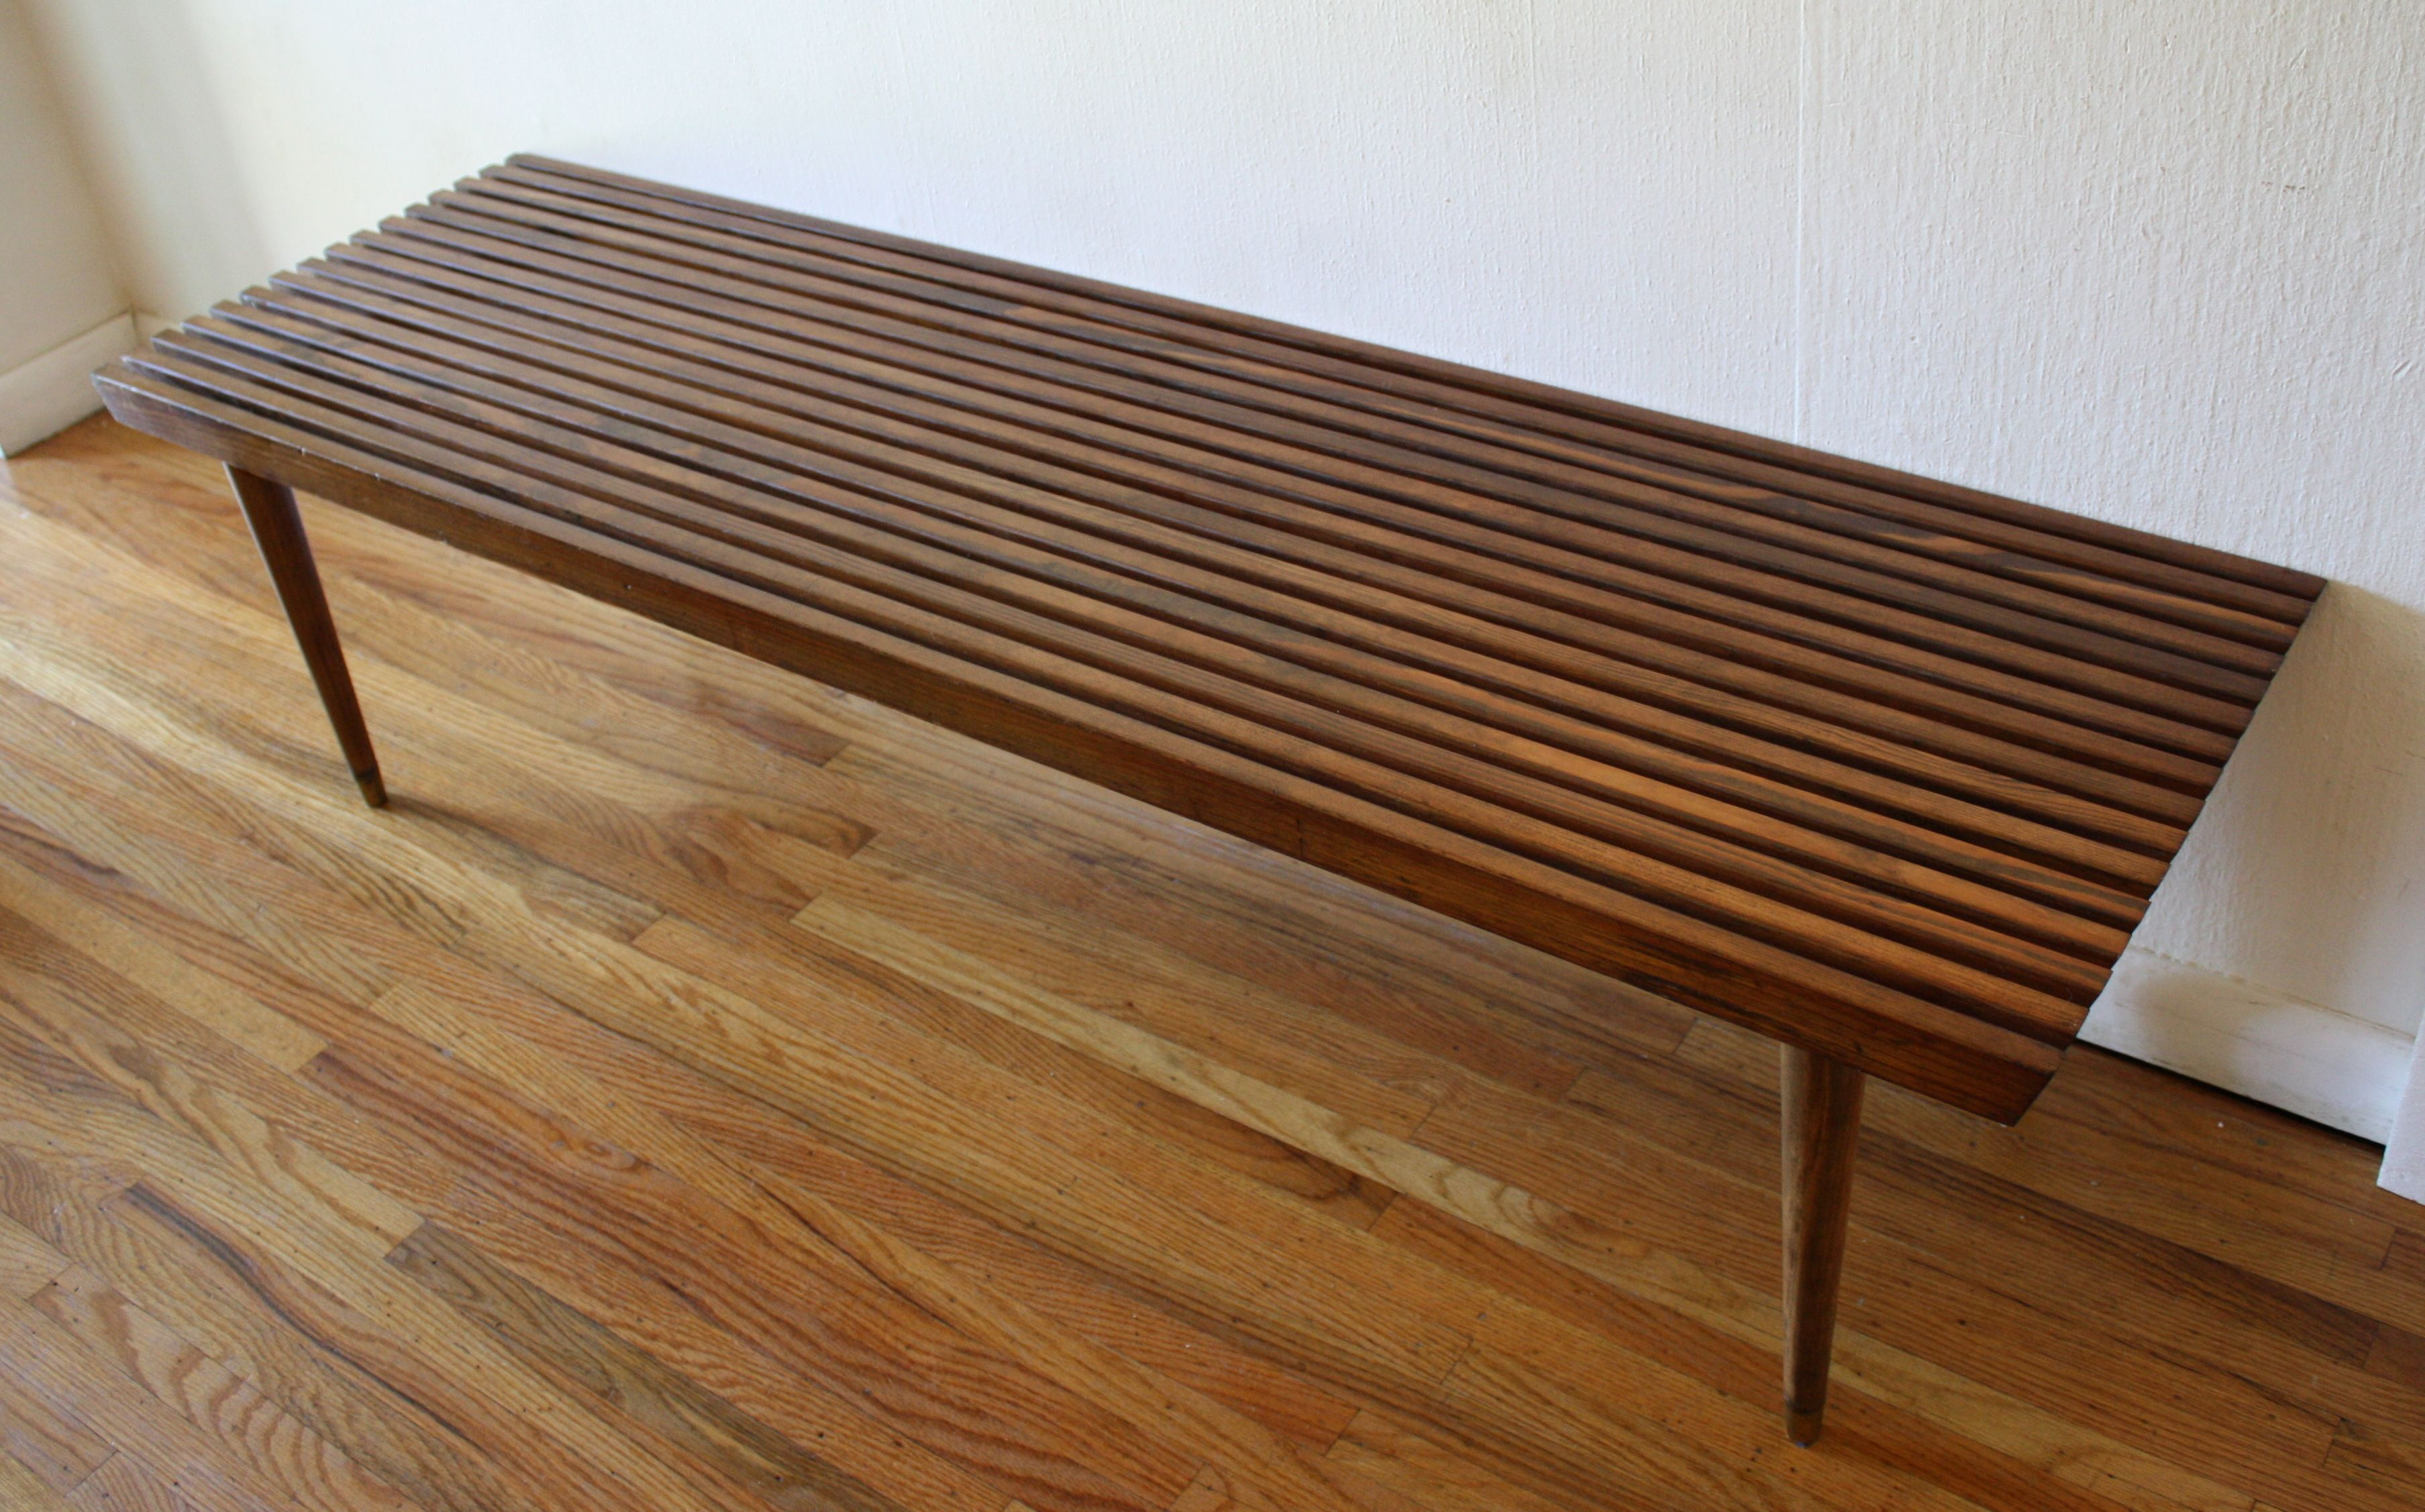 Cool Mid Century Modern Long Slatted Table Bench With Tapered Gmtry Best Dining Table And Chair Ideas Images Gmtryco